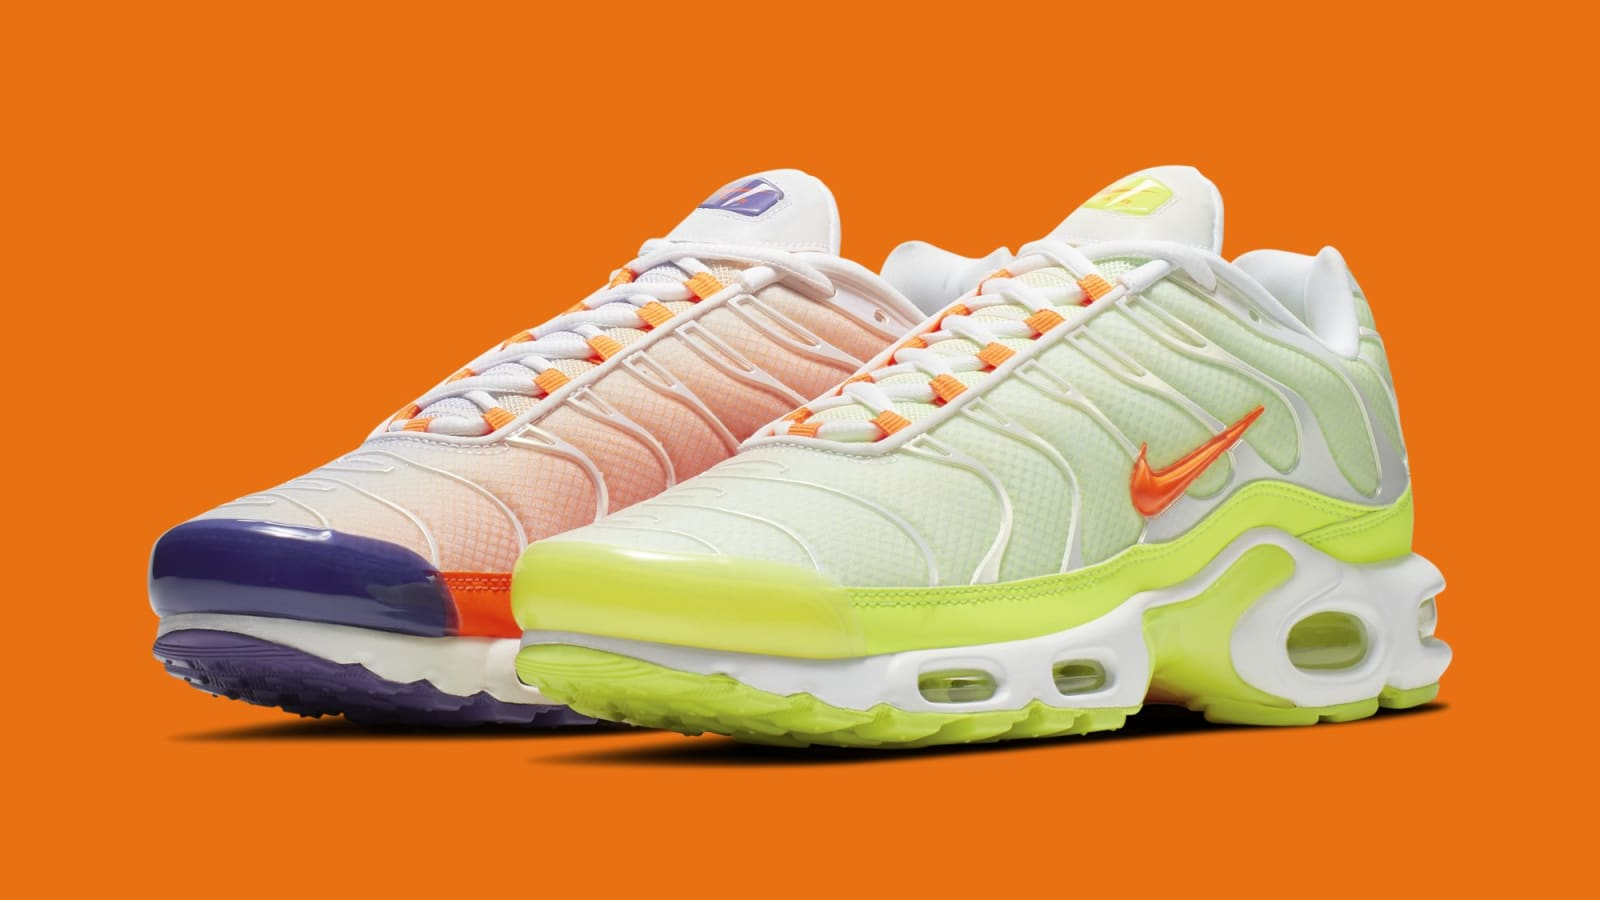 timeless design ce18d 521e7 Nike Air Max Plus